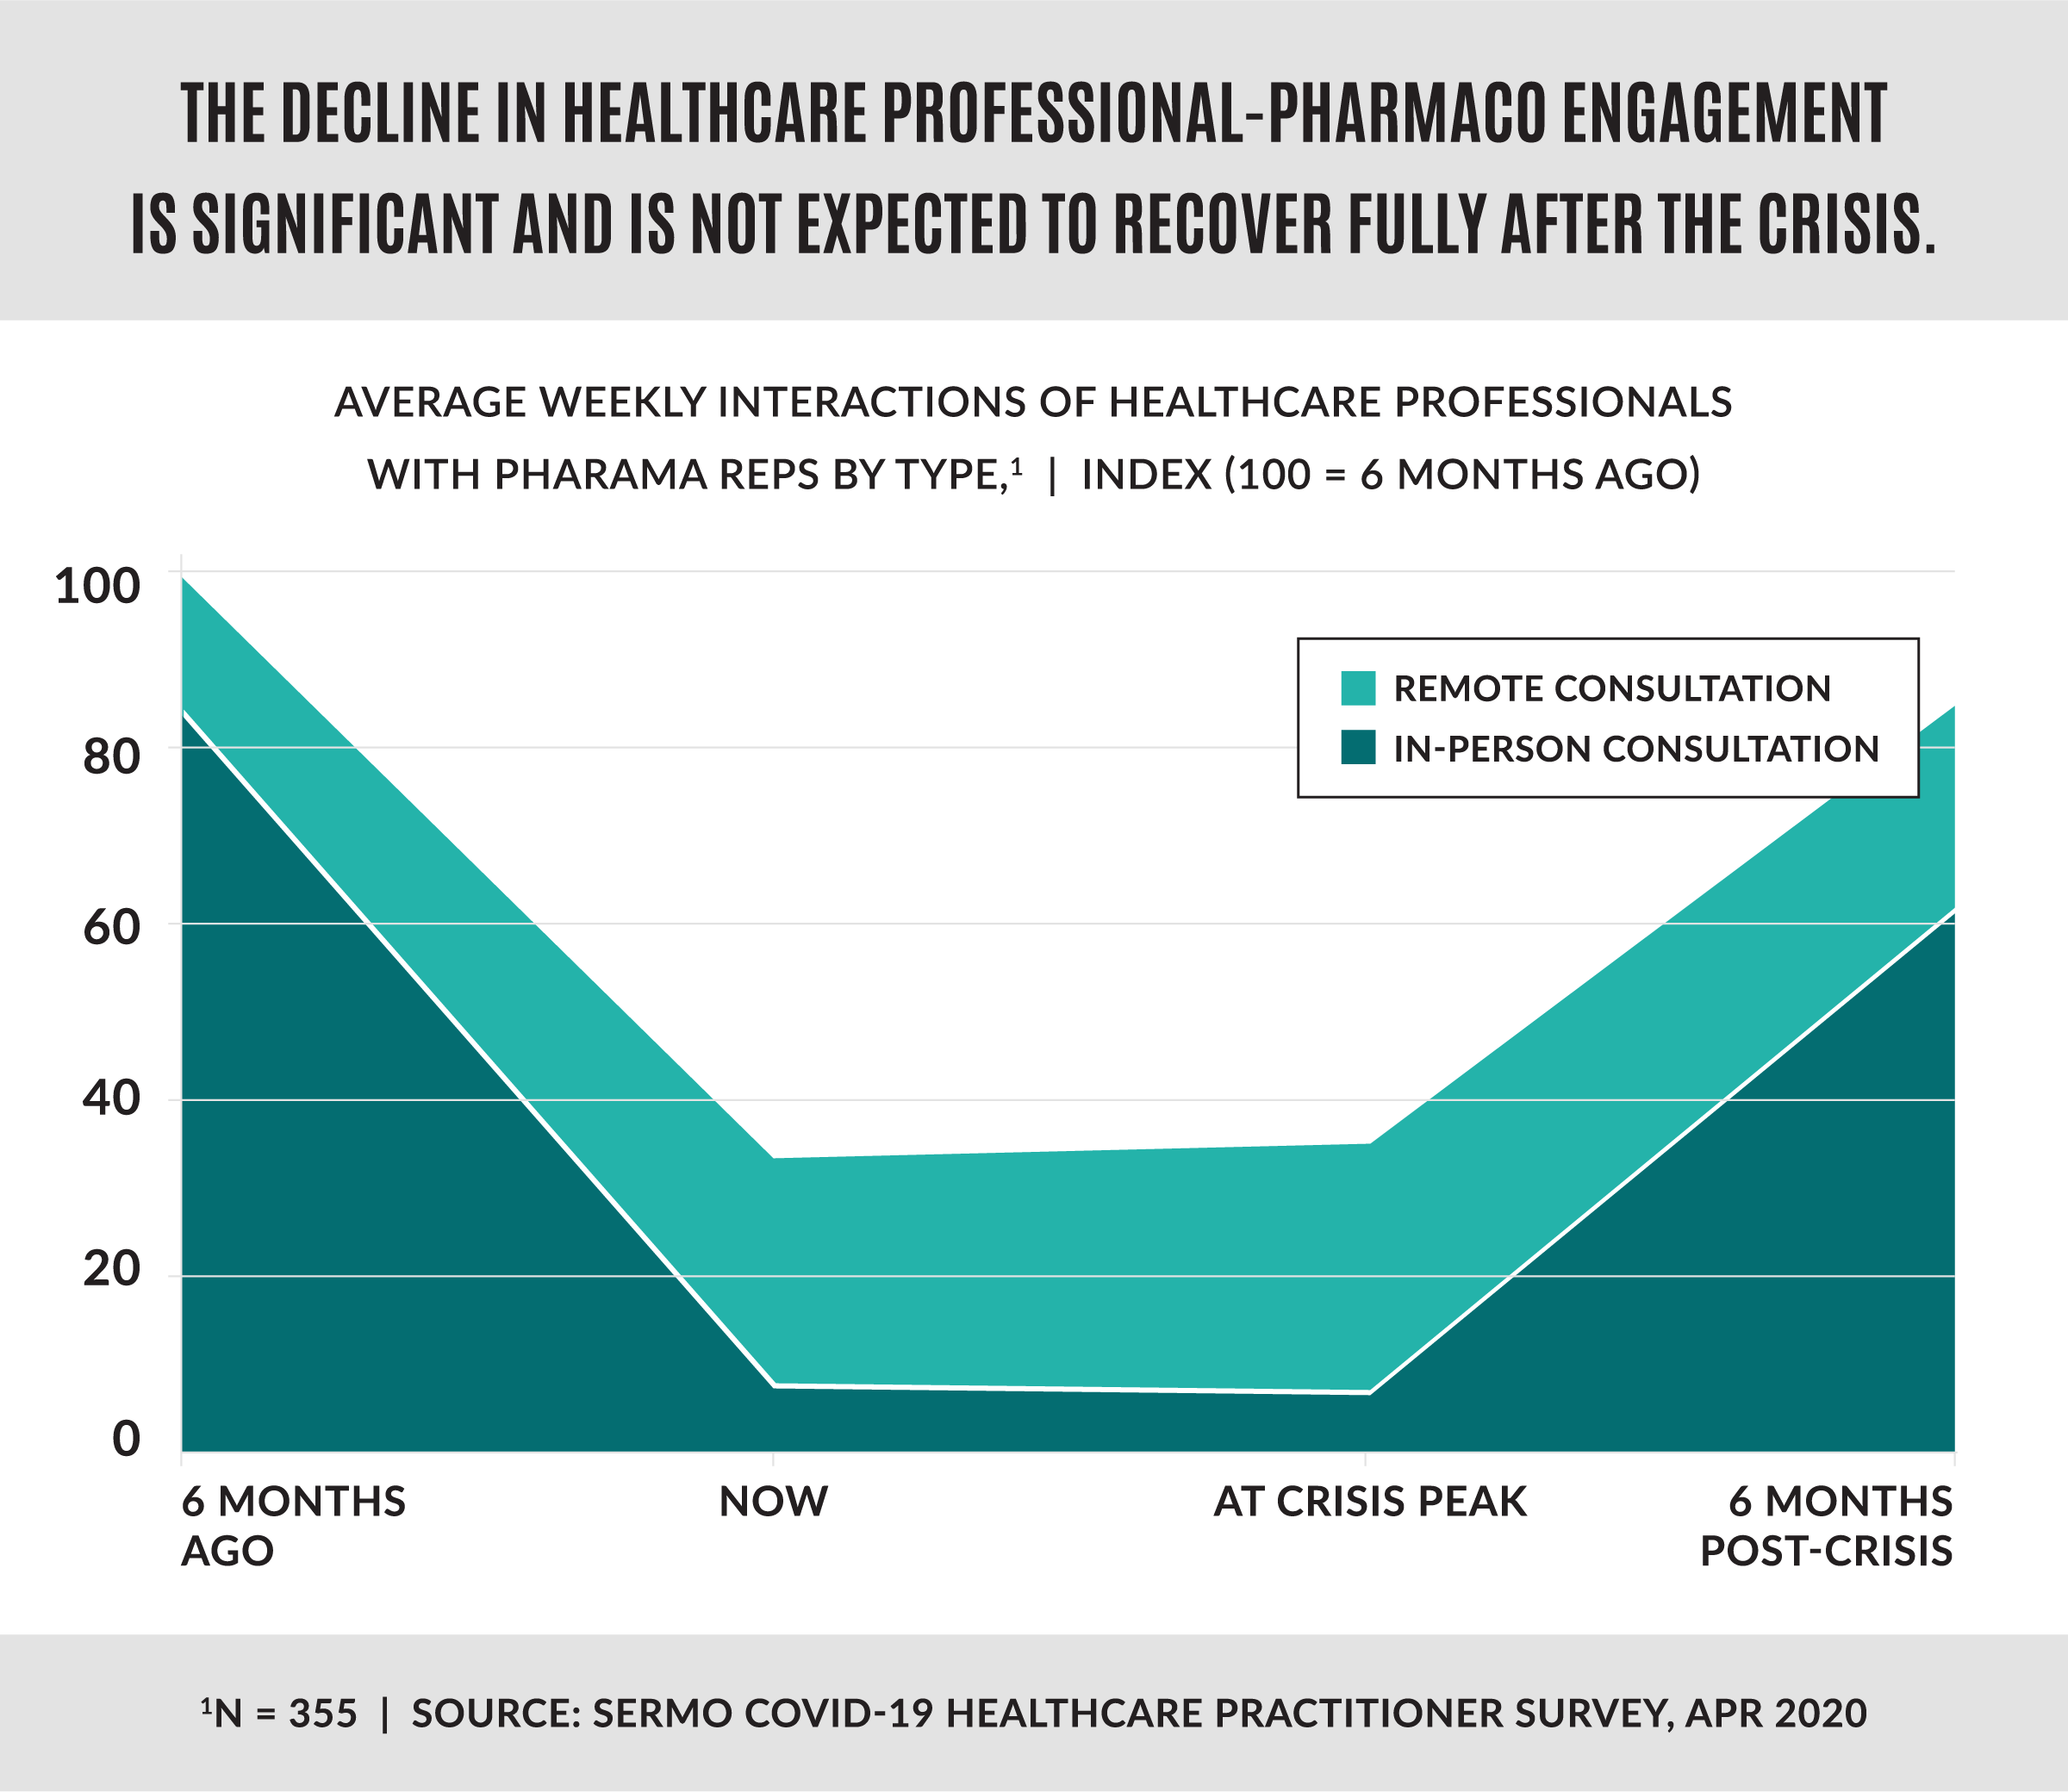 Decline in healthcare professional-pharmaco engagement